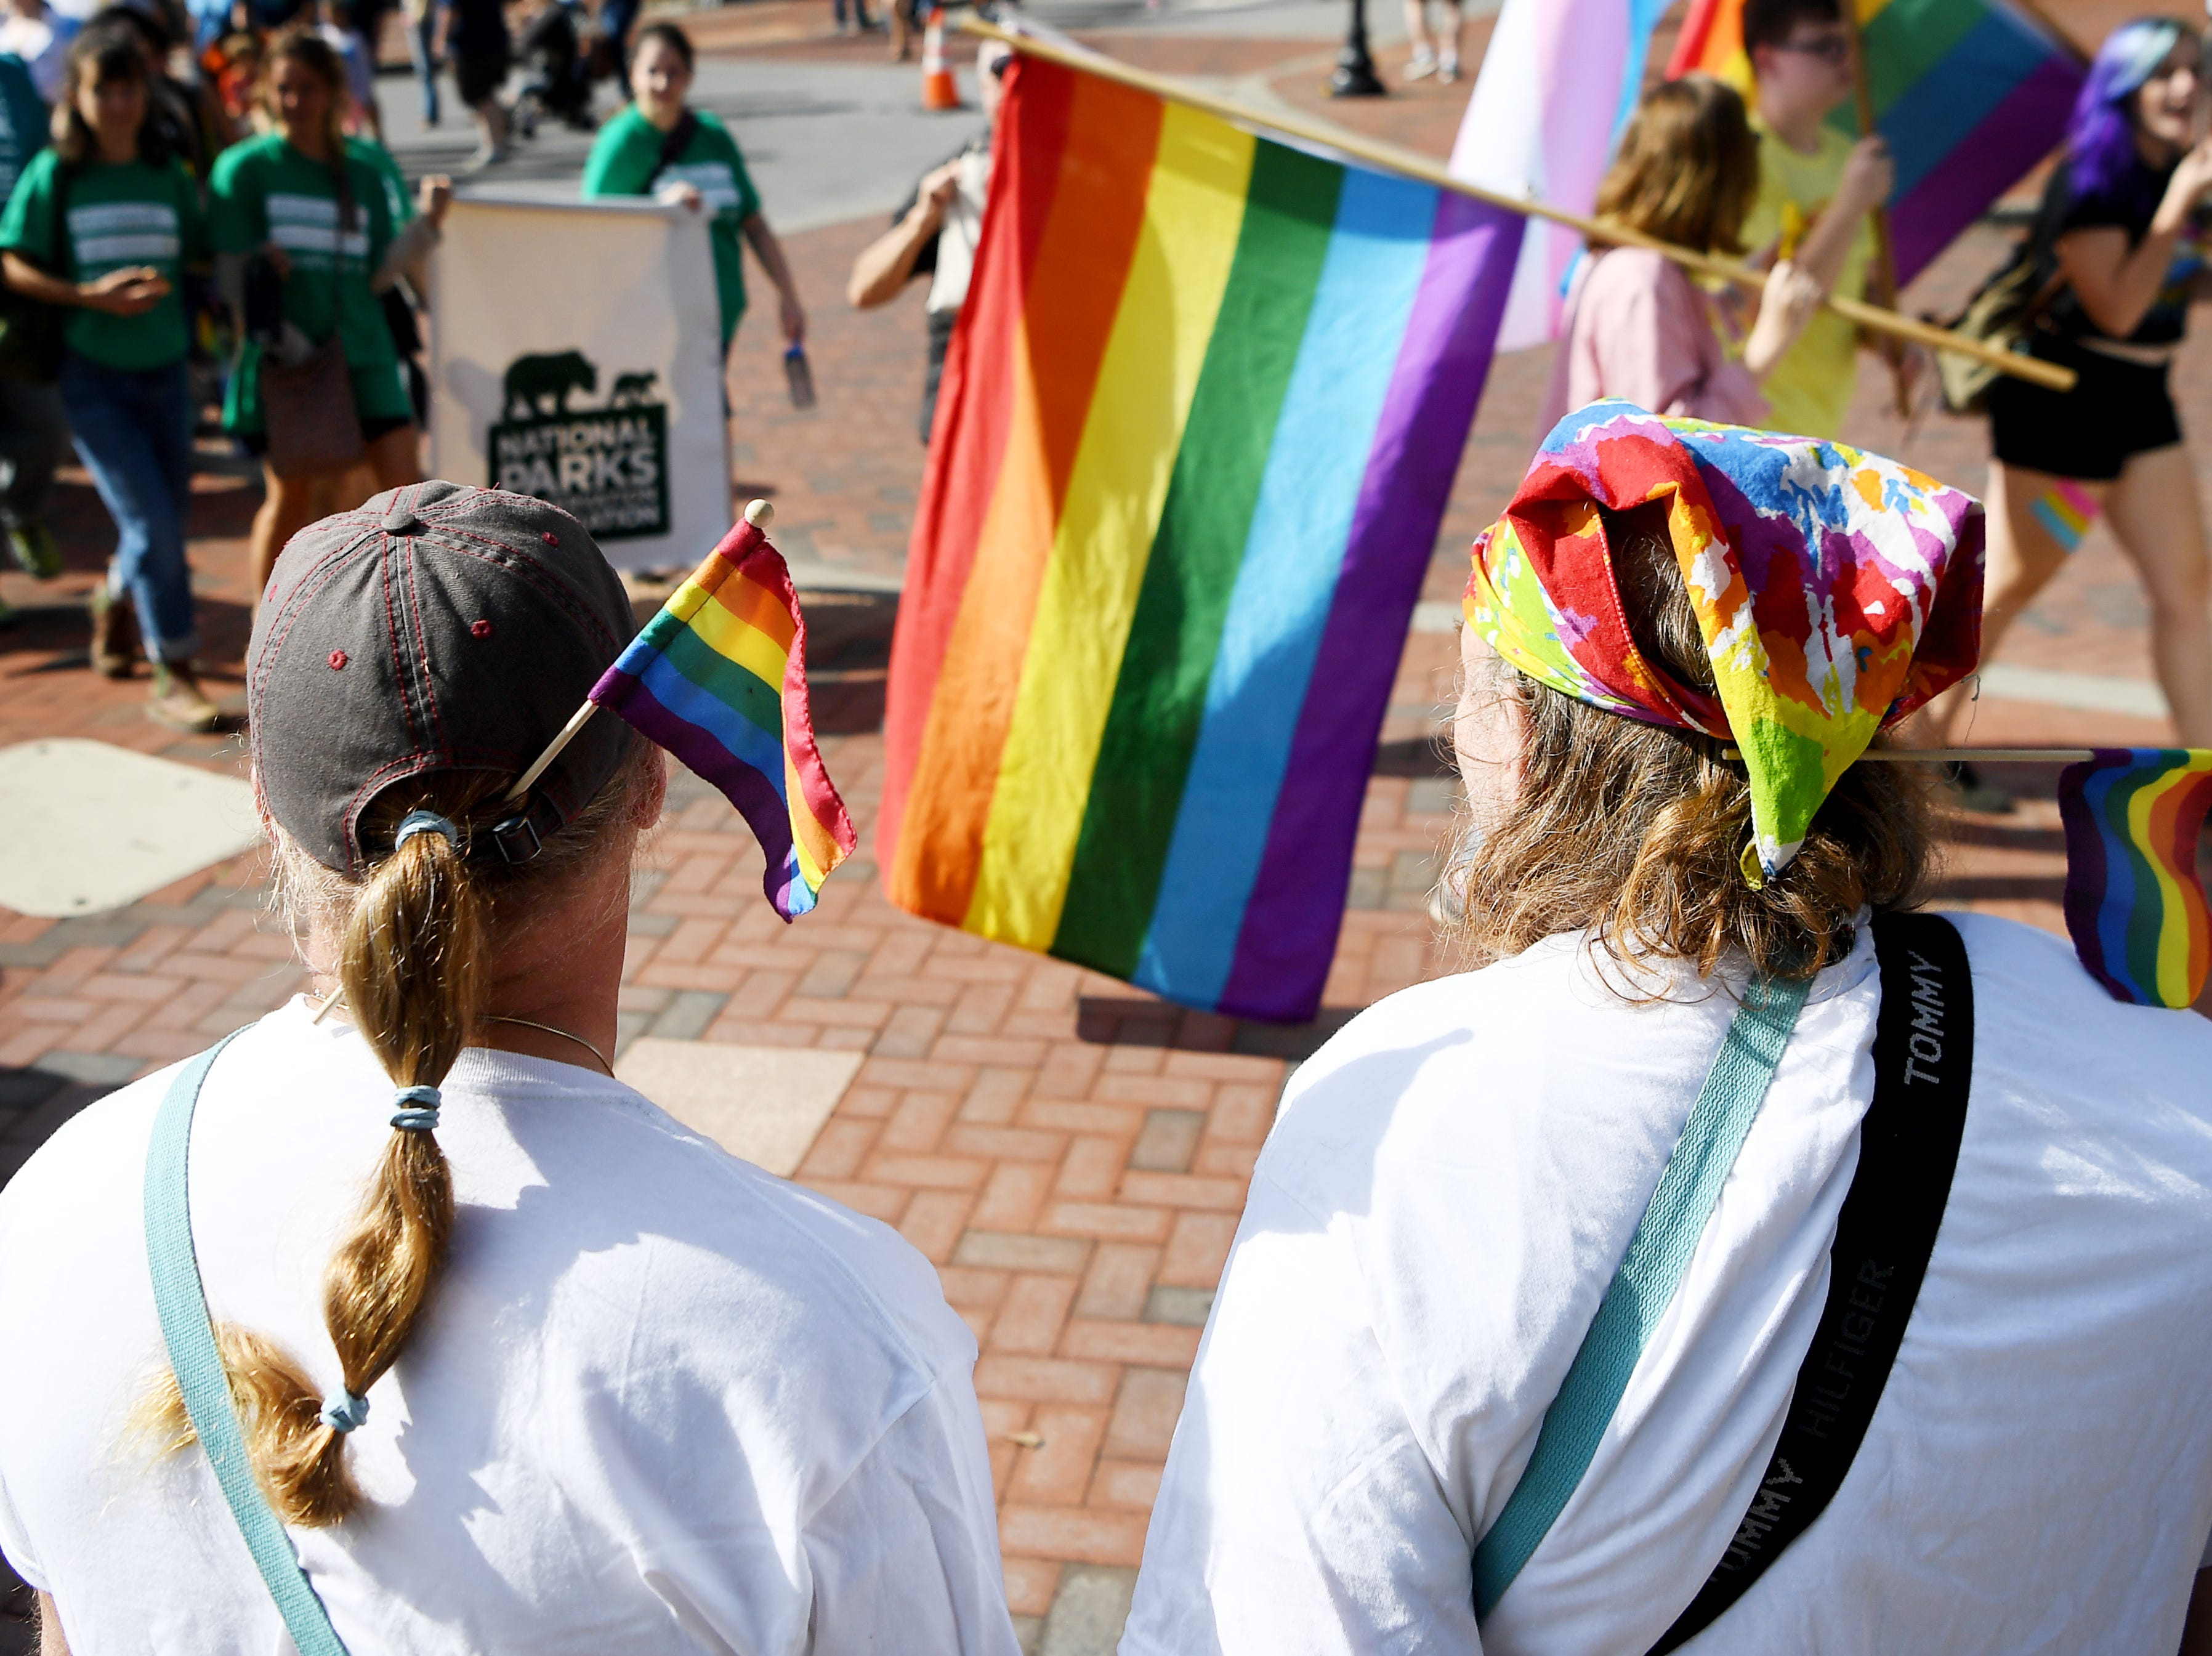 Husbands Lee, left, and William Hayes wear pride flags as they watch the Blue Ridge Pride procession in downtown Asheville Sept. 29, 2018.